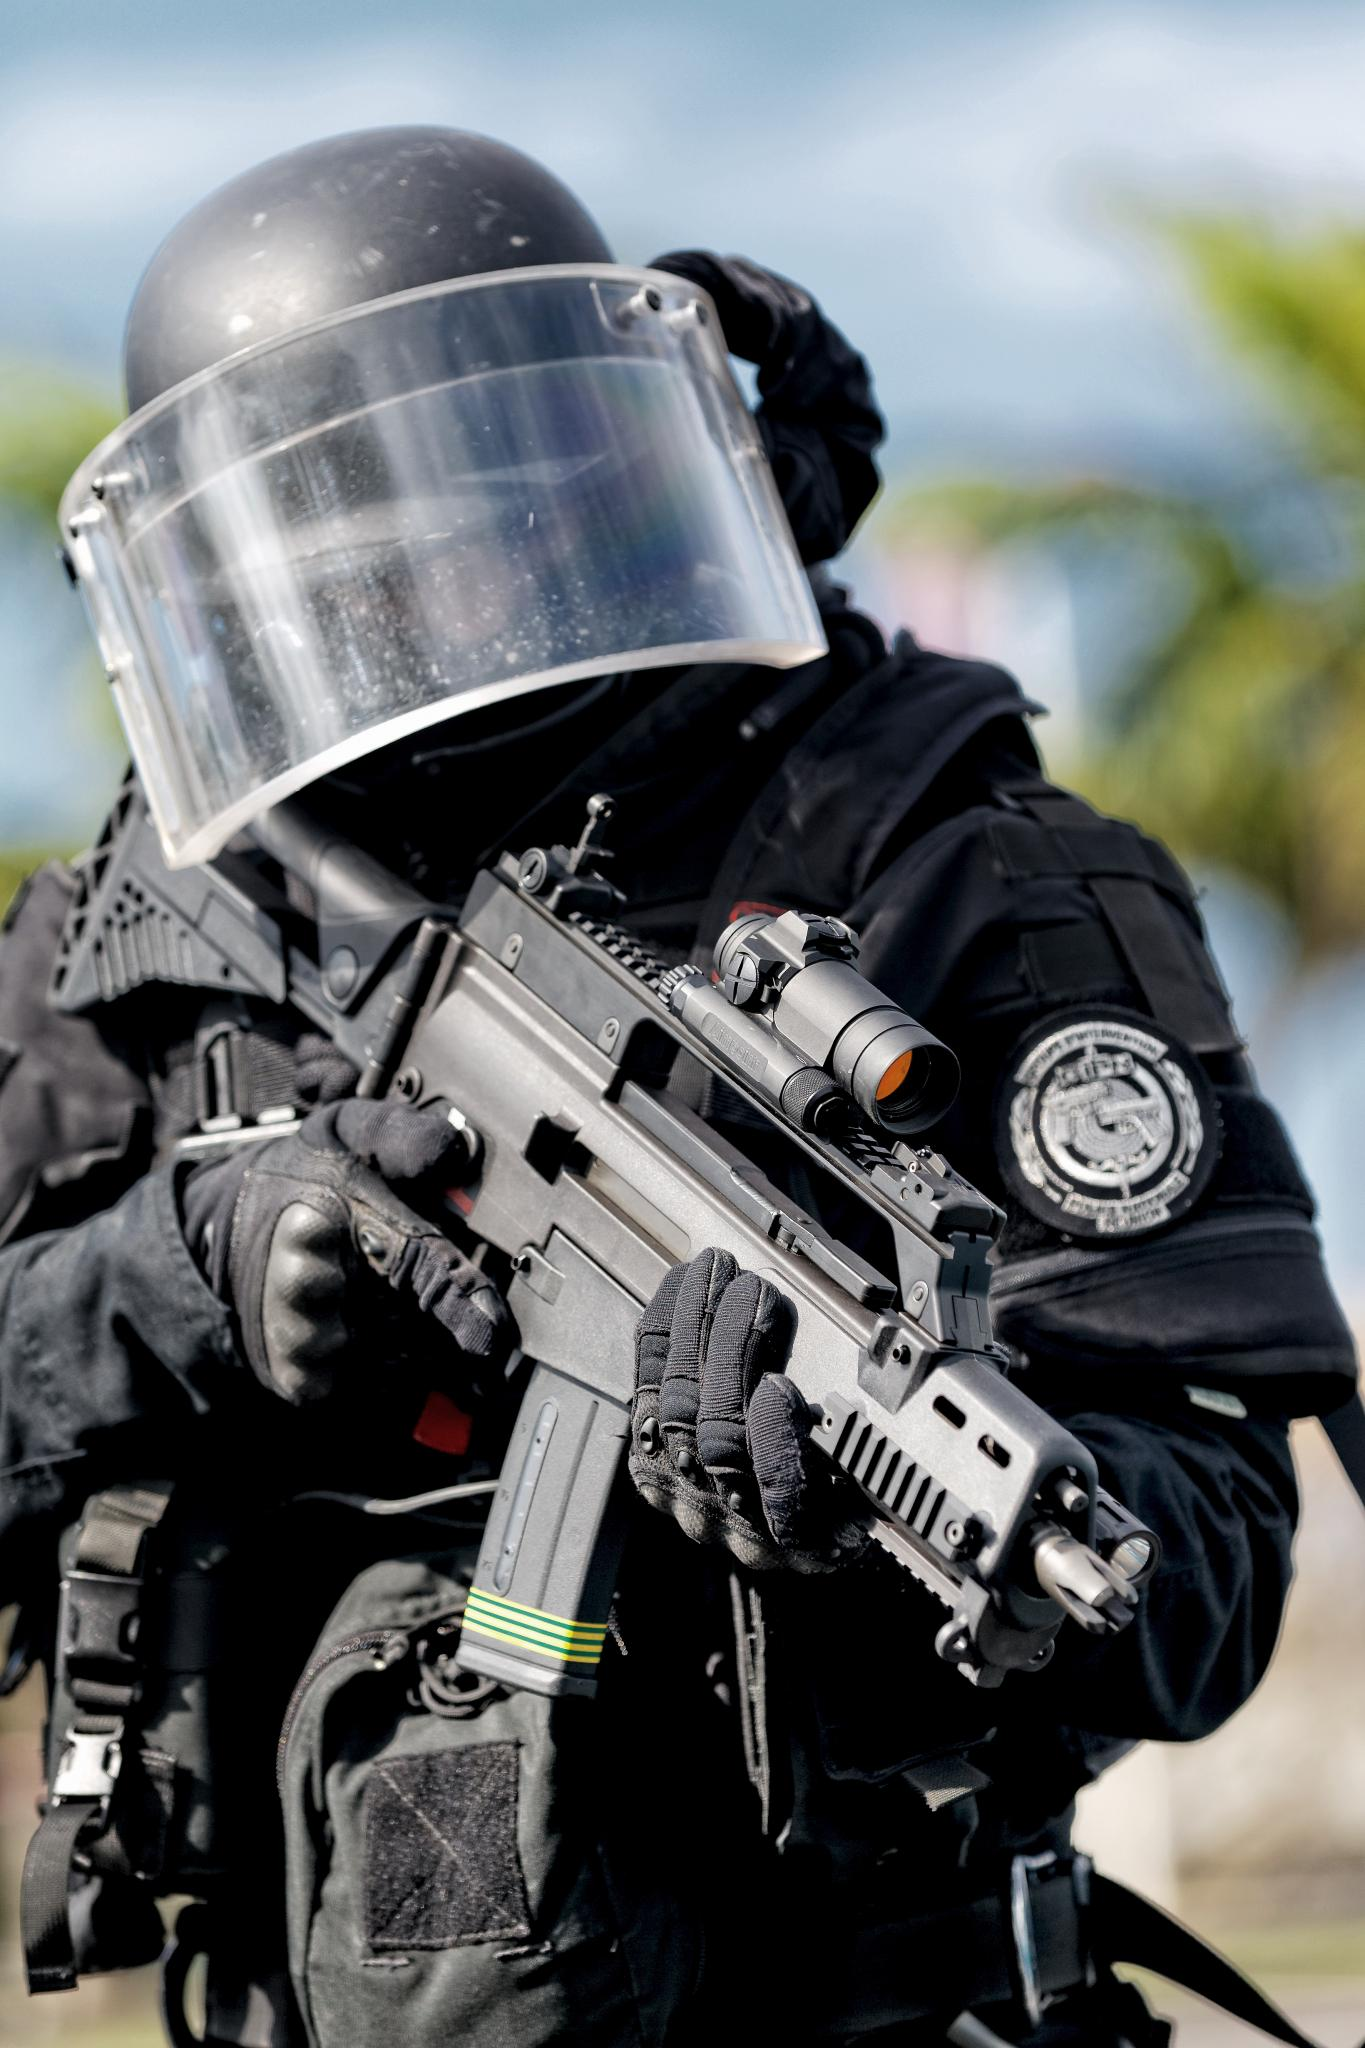 GIGN - Photo AdobeStock